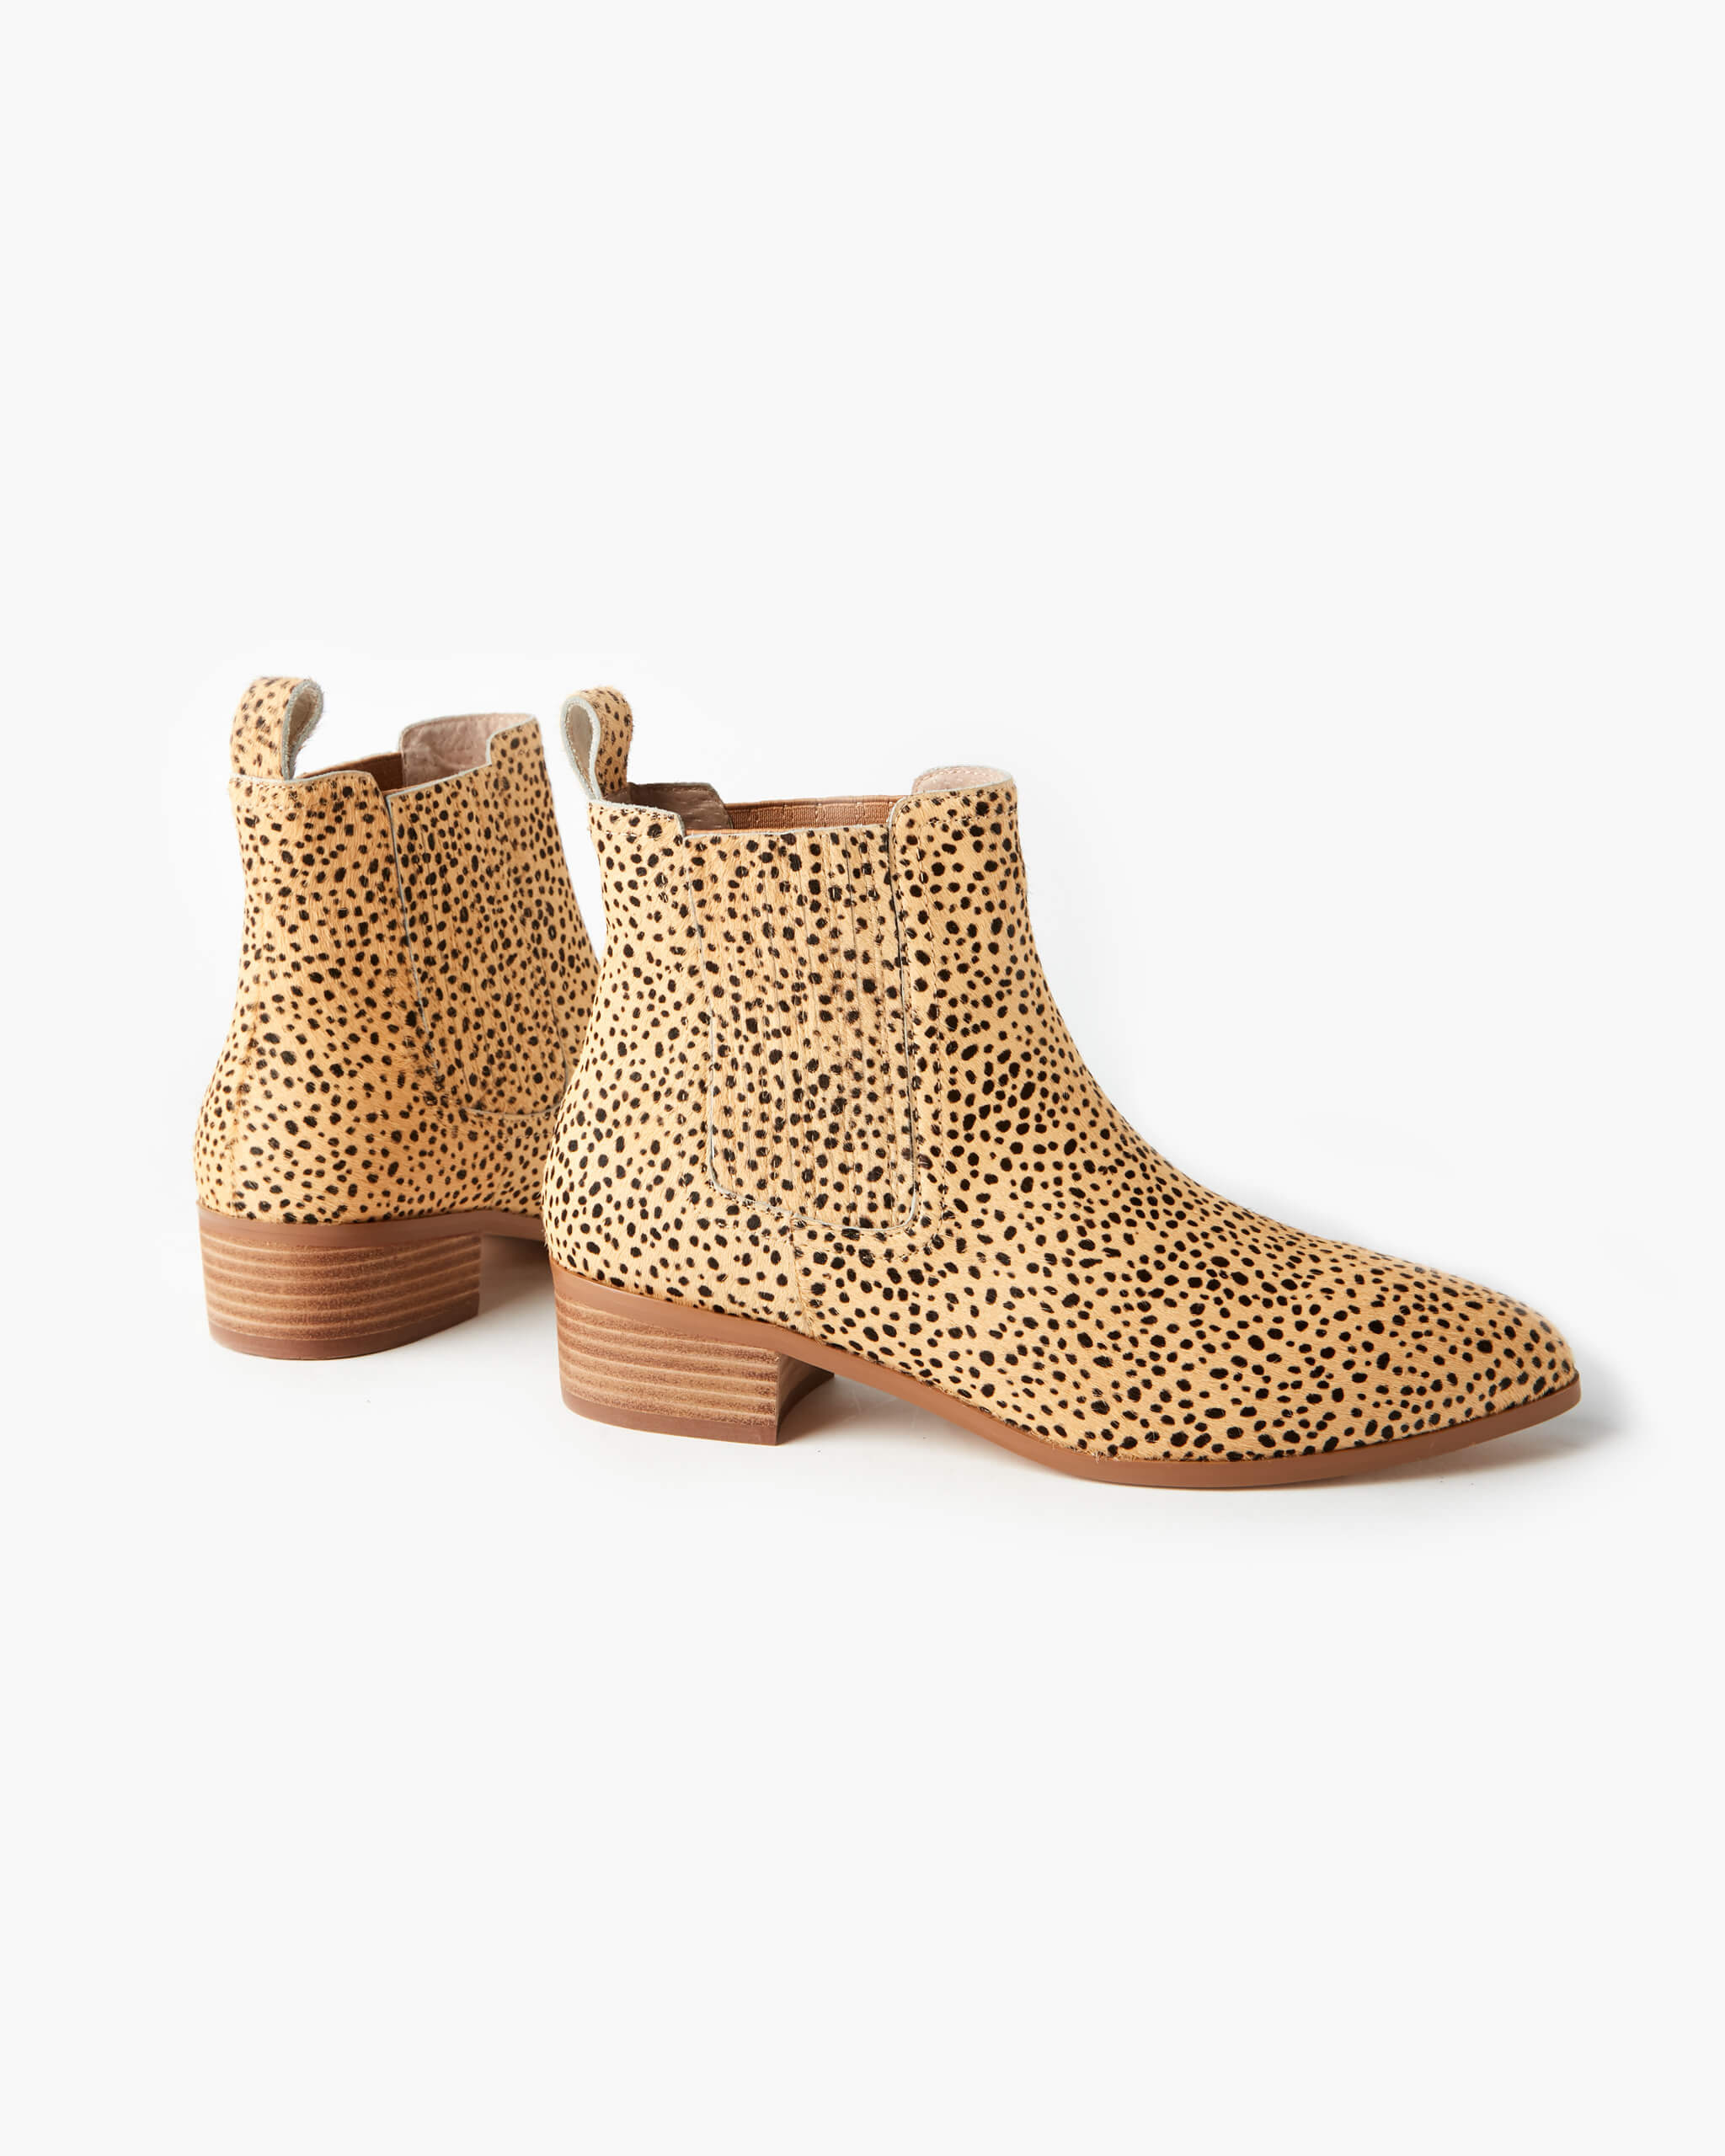 Jada Leather Boot - Tan Cheetah